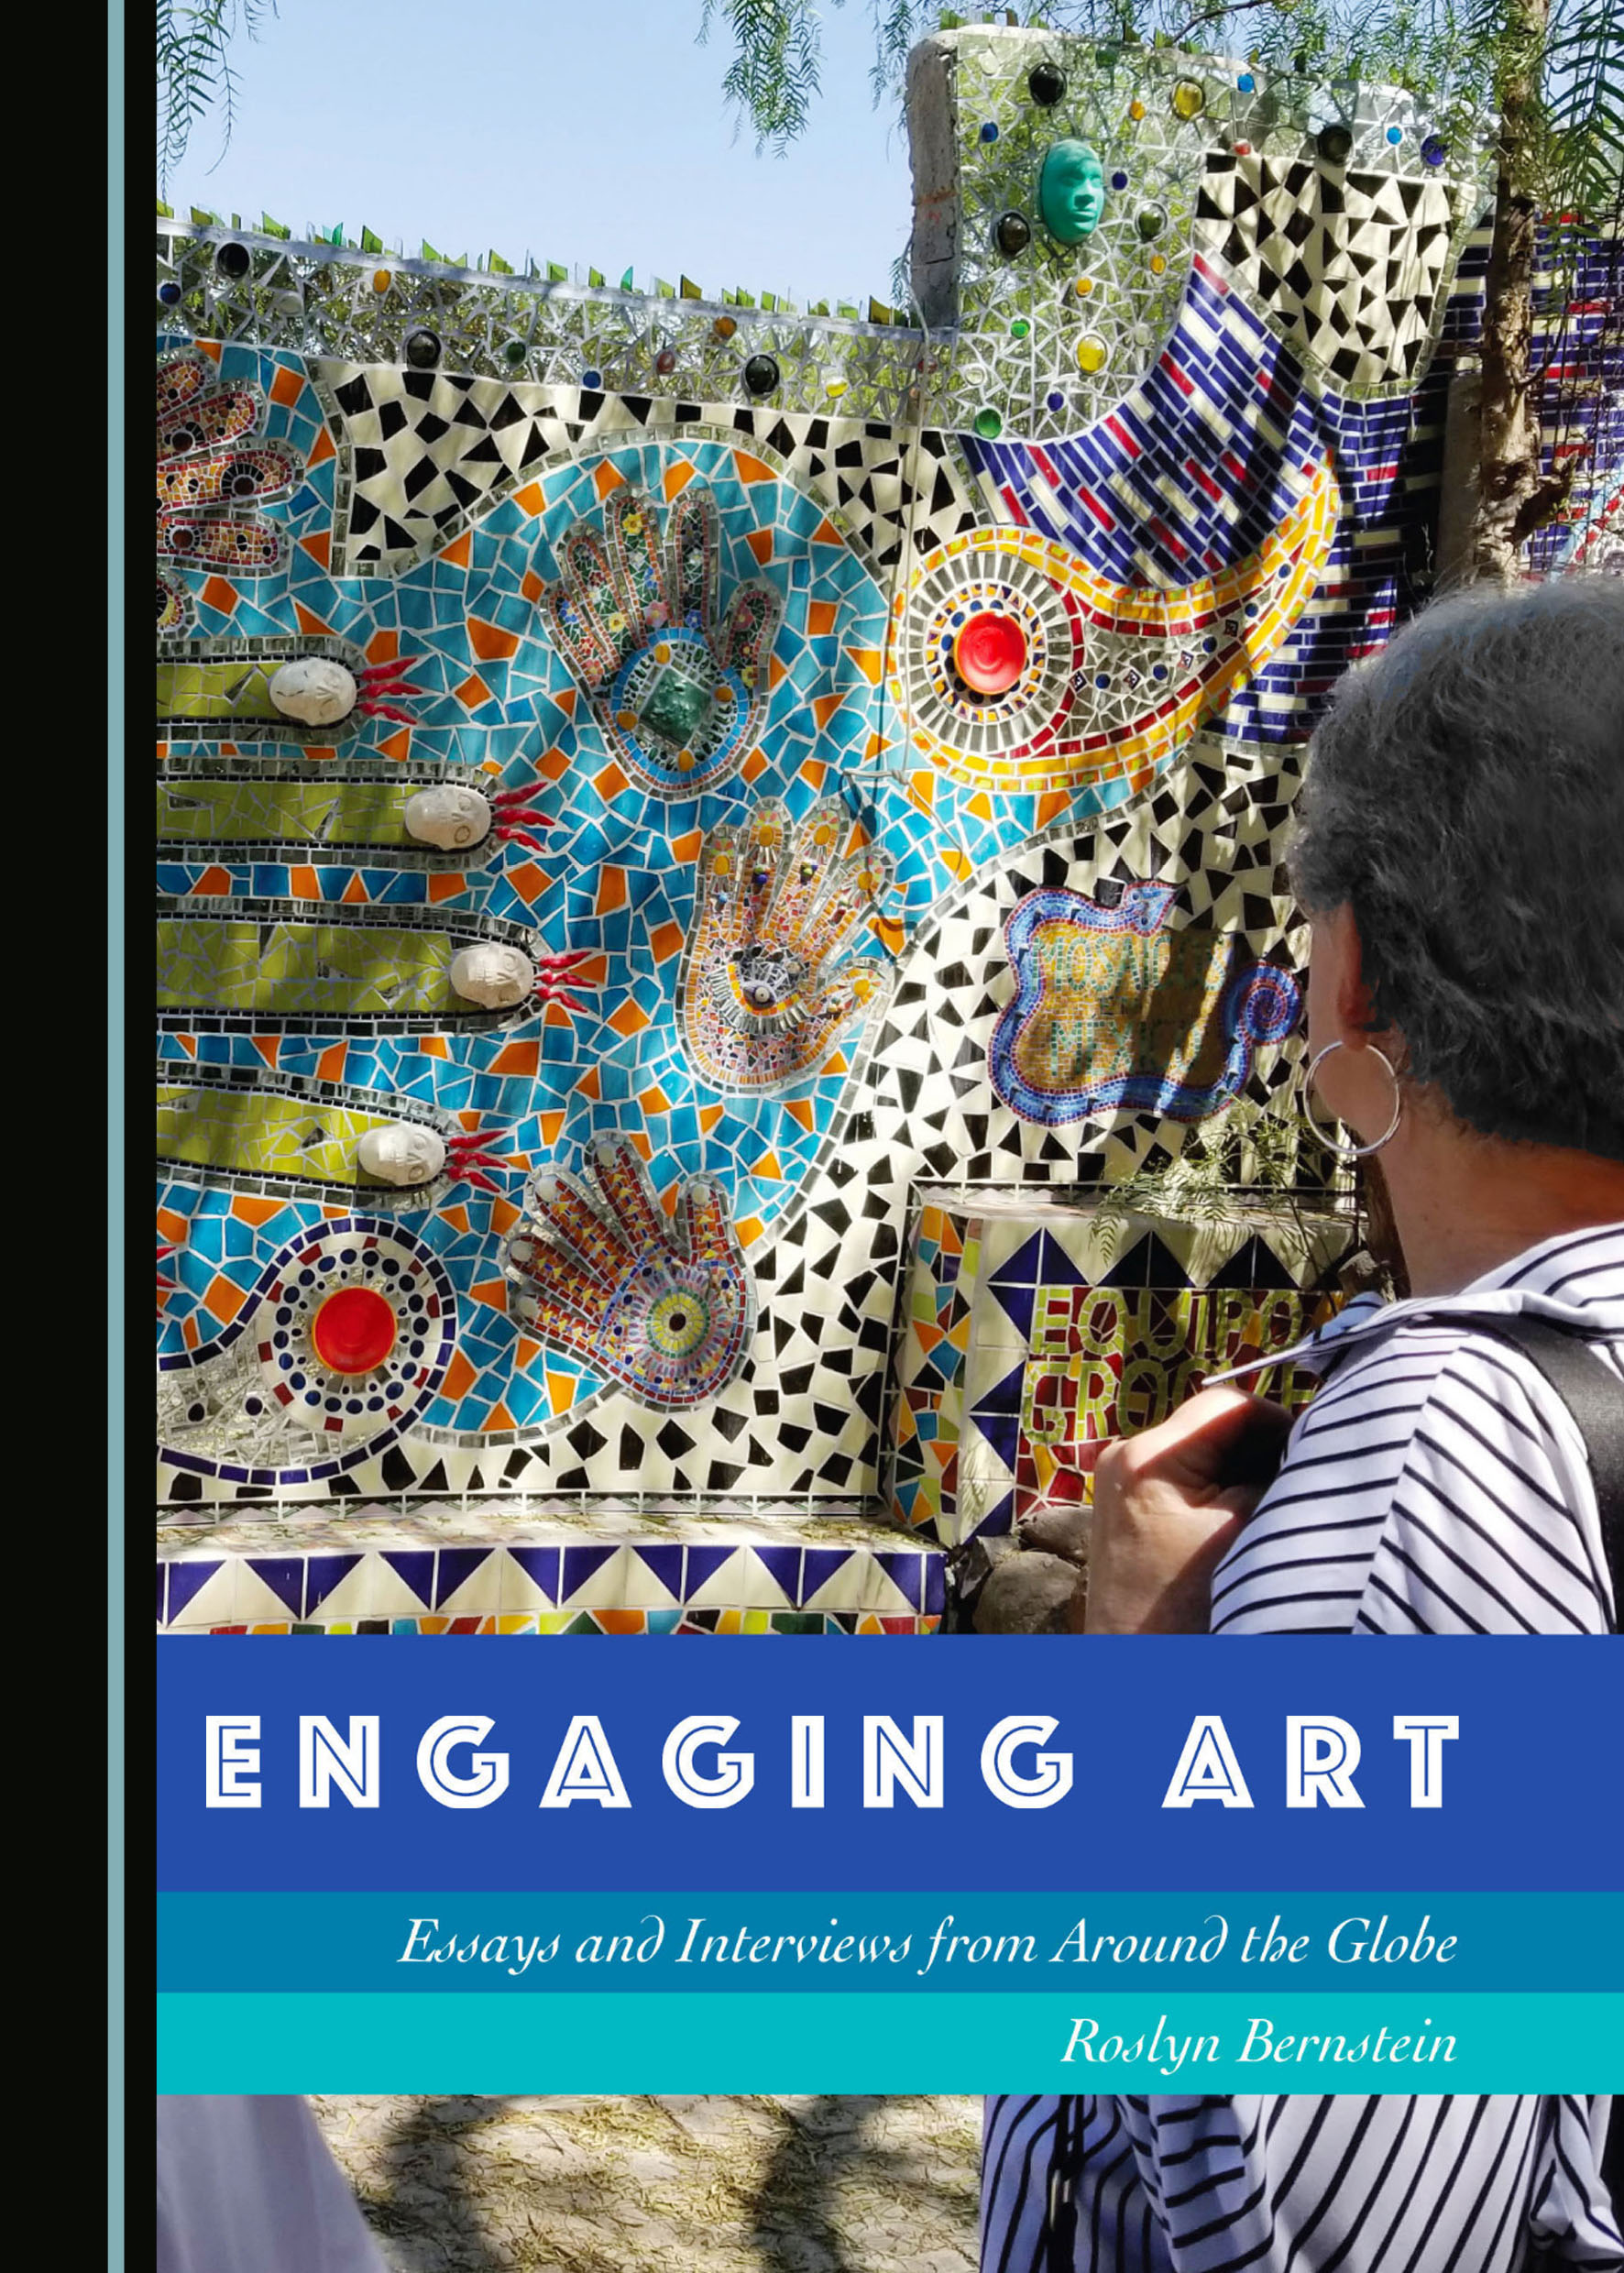 Engaging Art: Essays and Interviews from Around the Globe